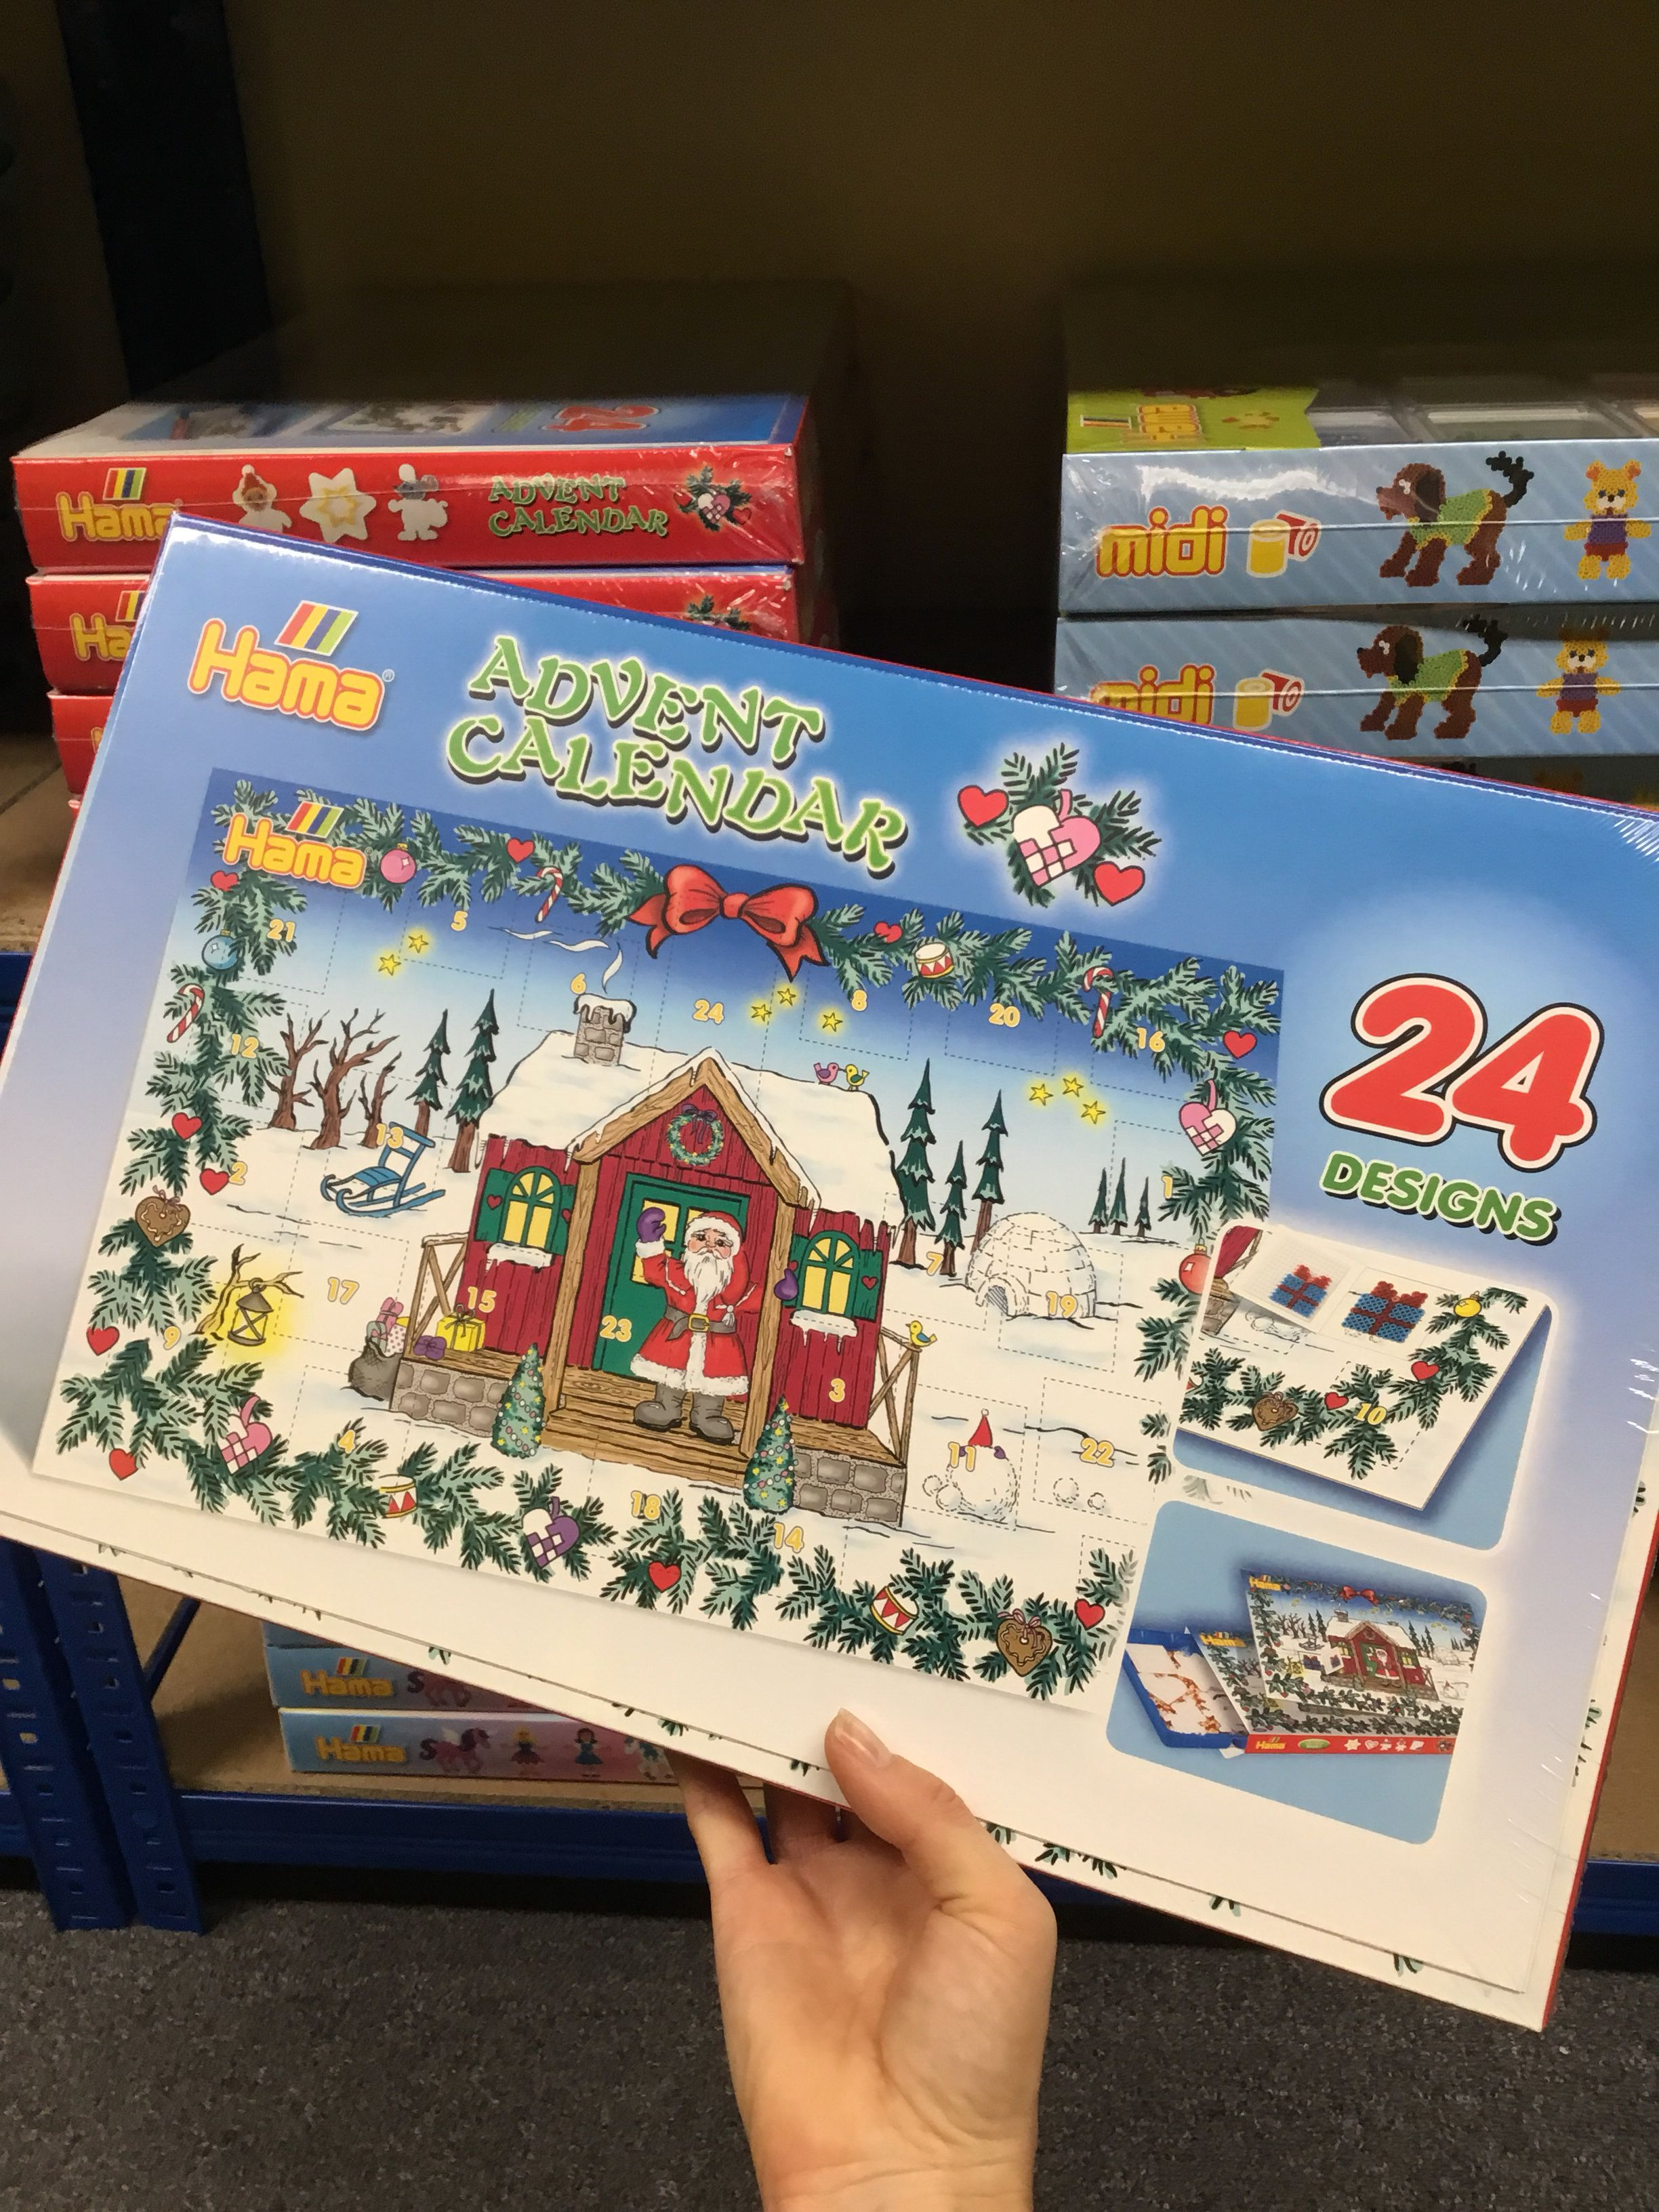 993012865f924 The brand new Hama Beads advent calendar is flying off shelves! We just  stocked up